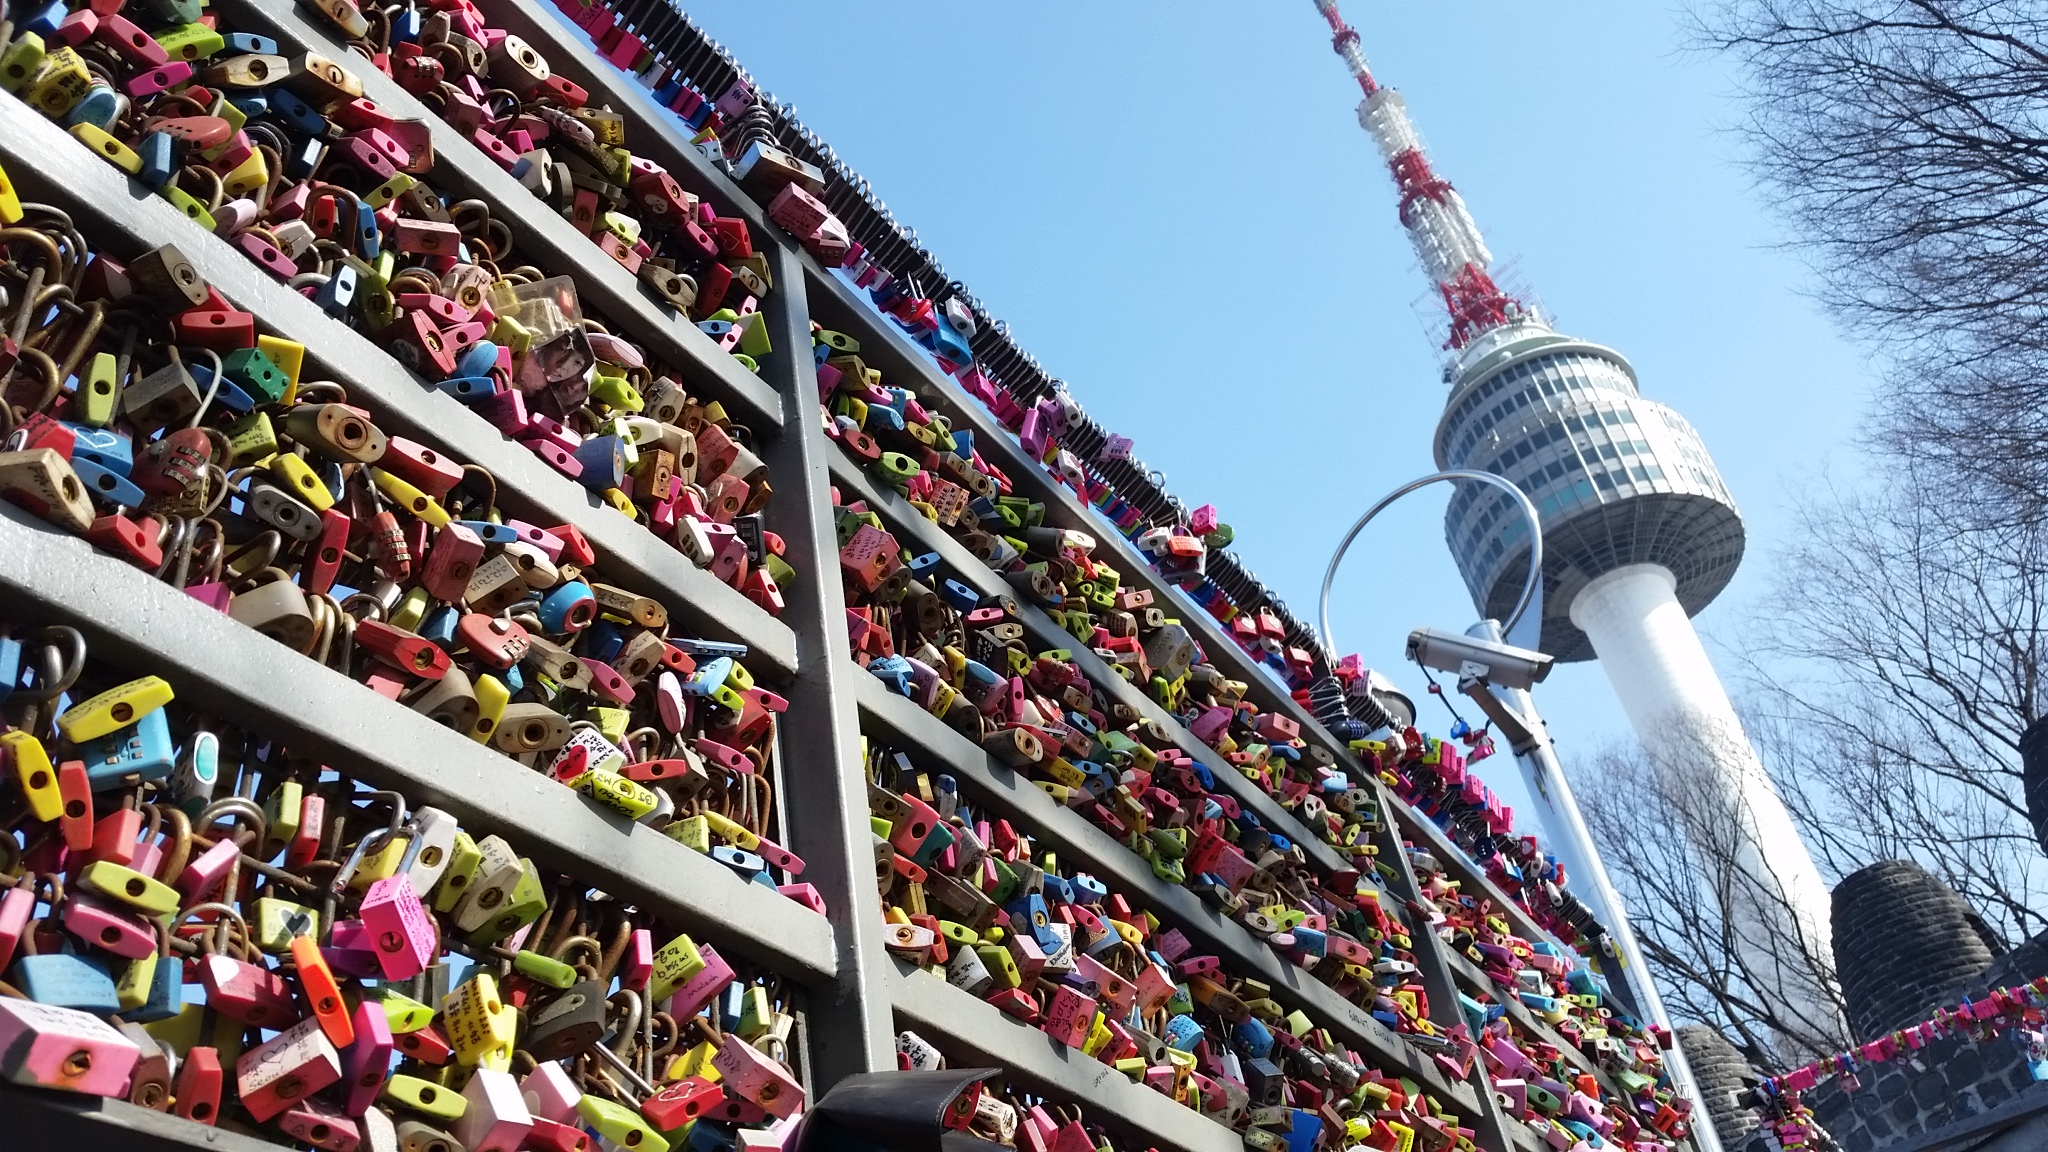 Love locks with N Seoul Tower in the background